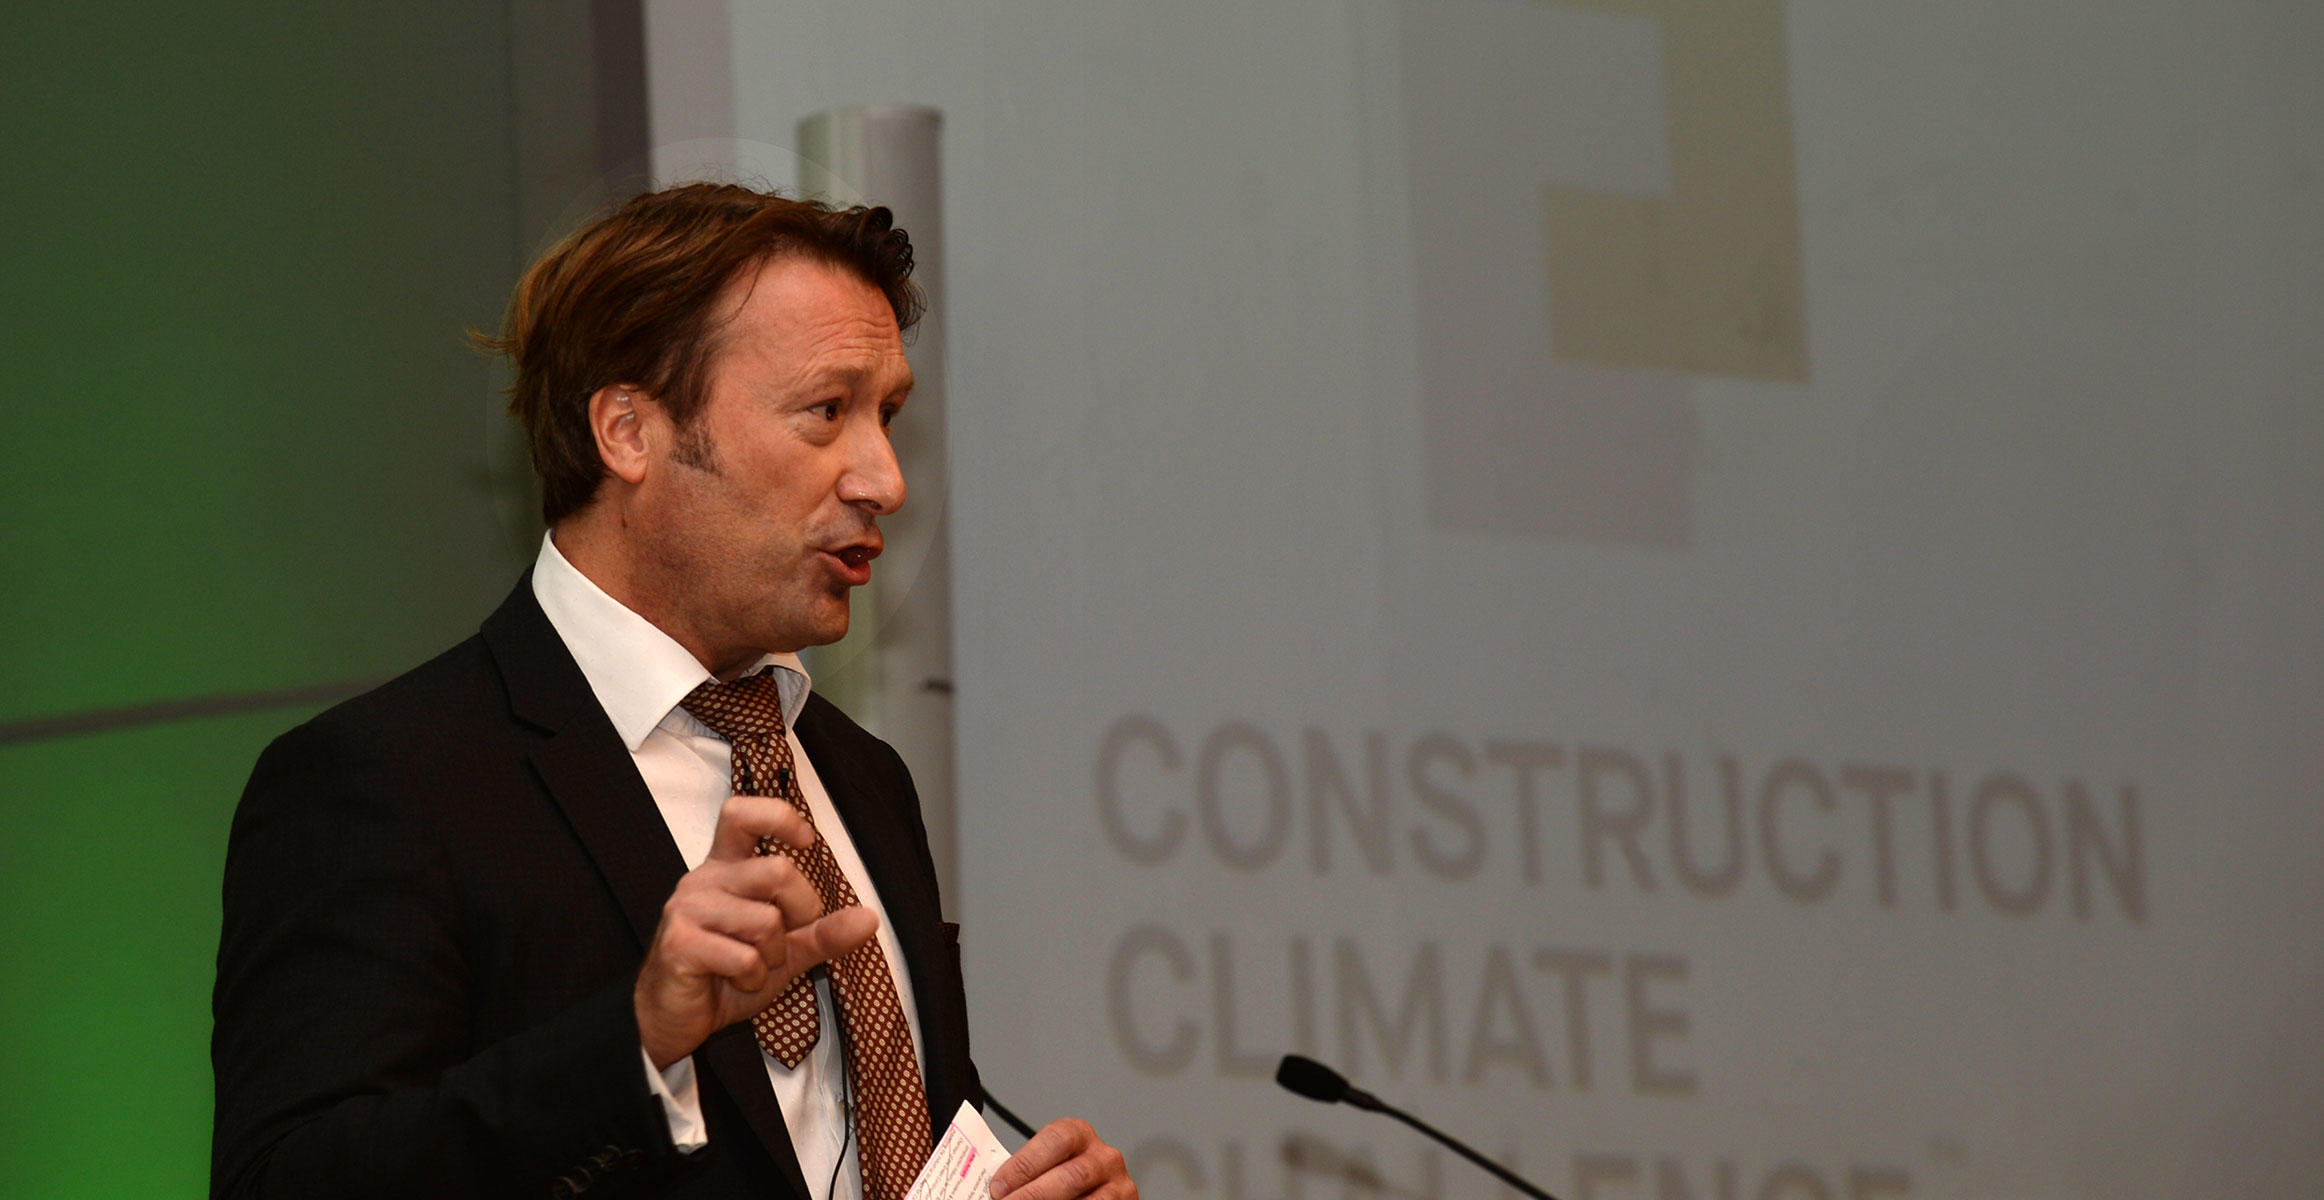 Climate seminar asserts cost saving potential of carbon reduction on infrastructure construction